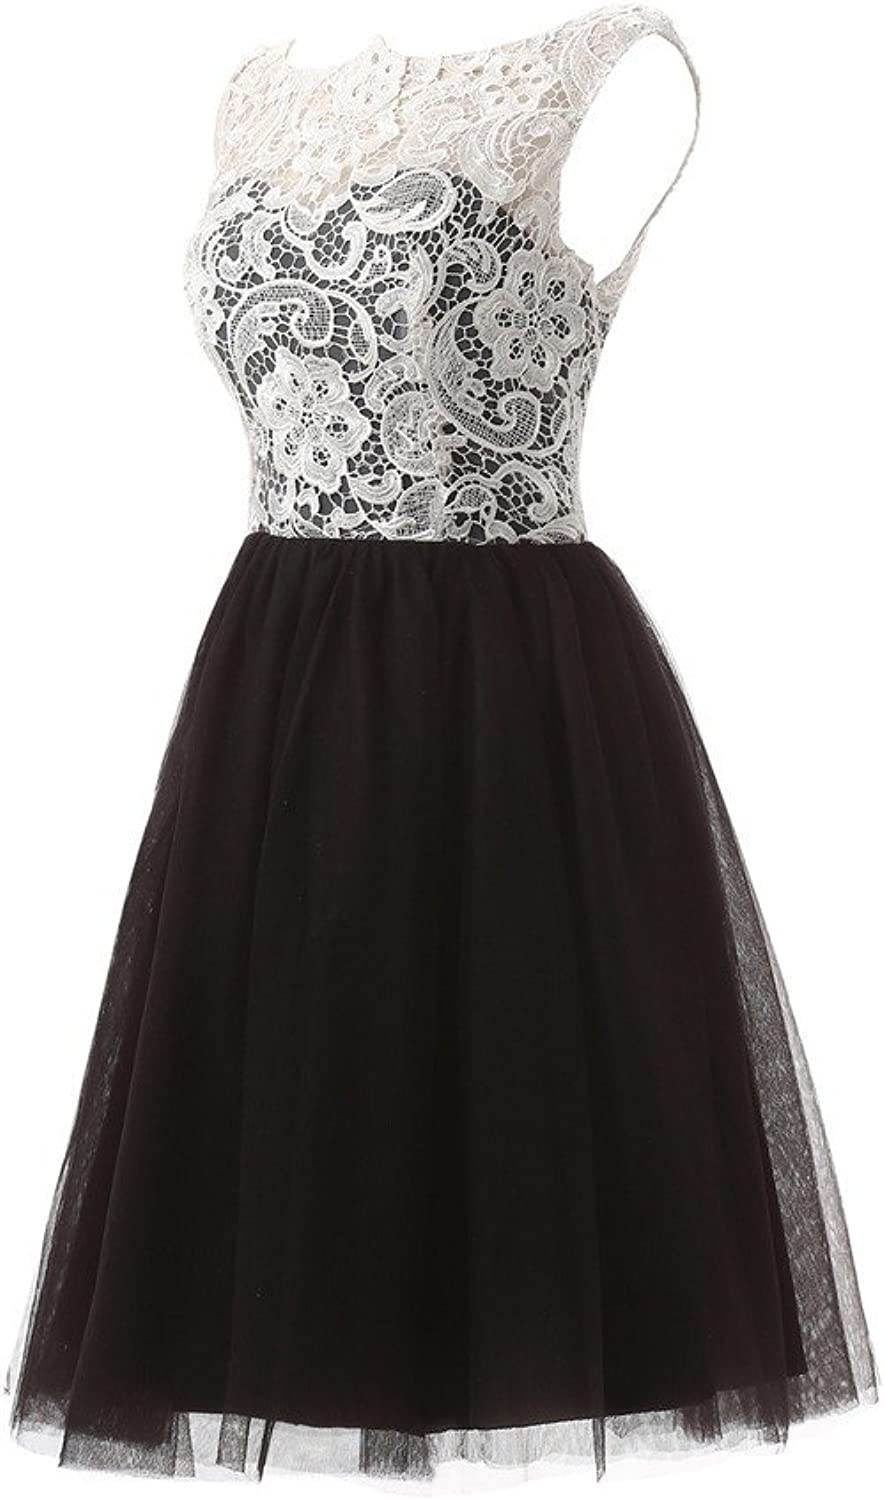 YSFS Women's Scoop Neck Lace Tulle Mini Short Homecoming Dresses Prom Party Gowns